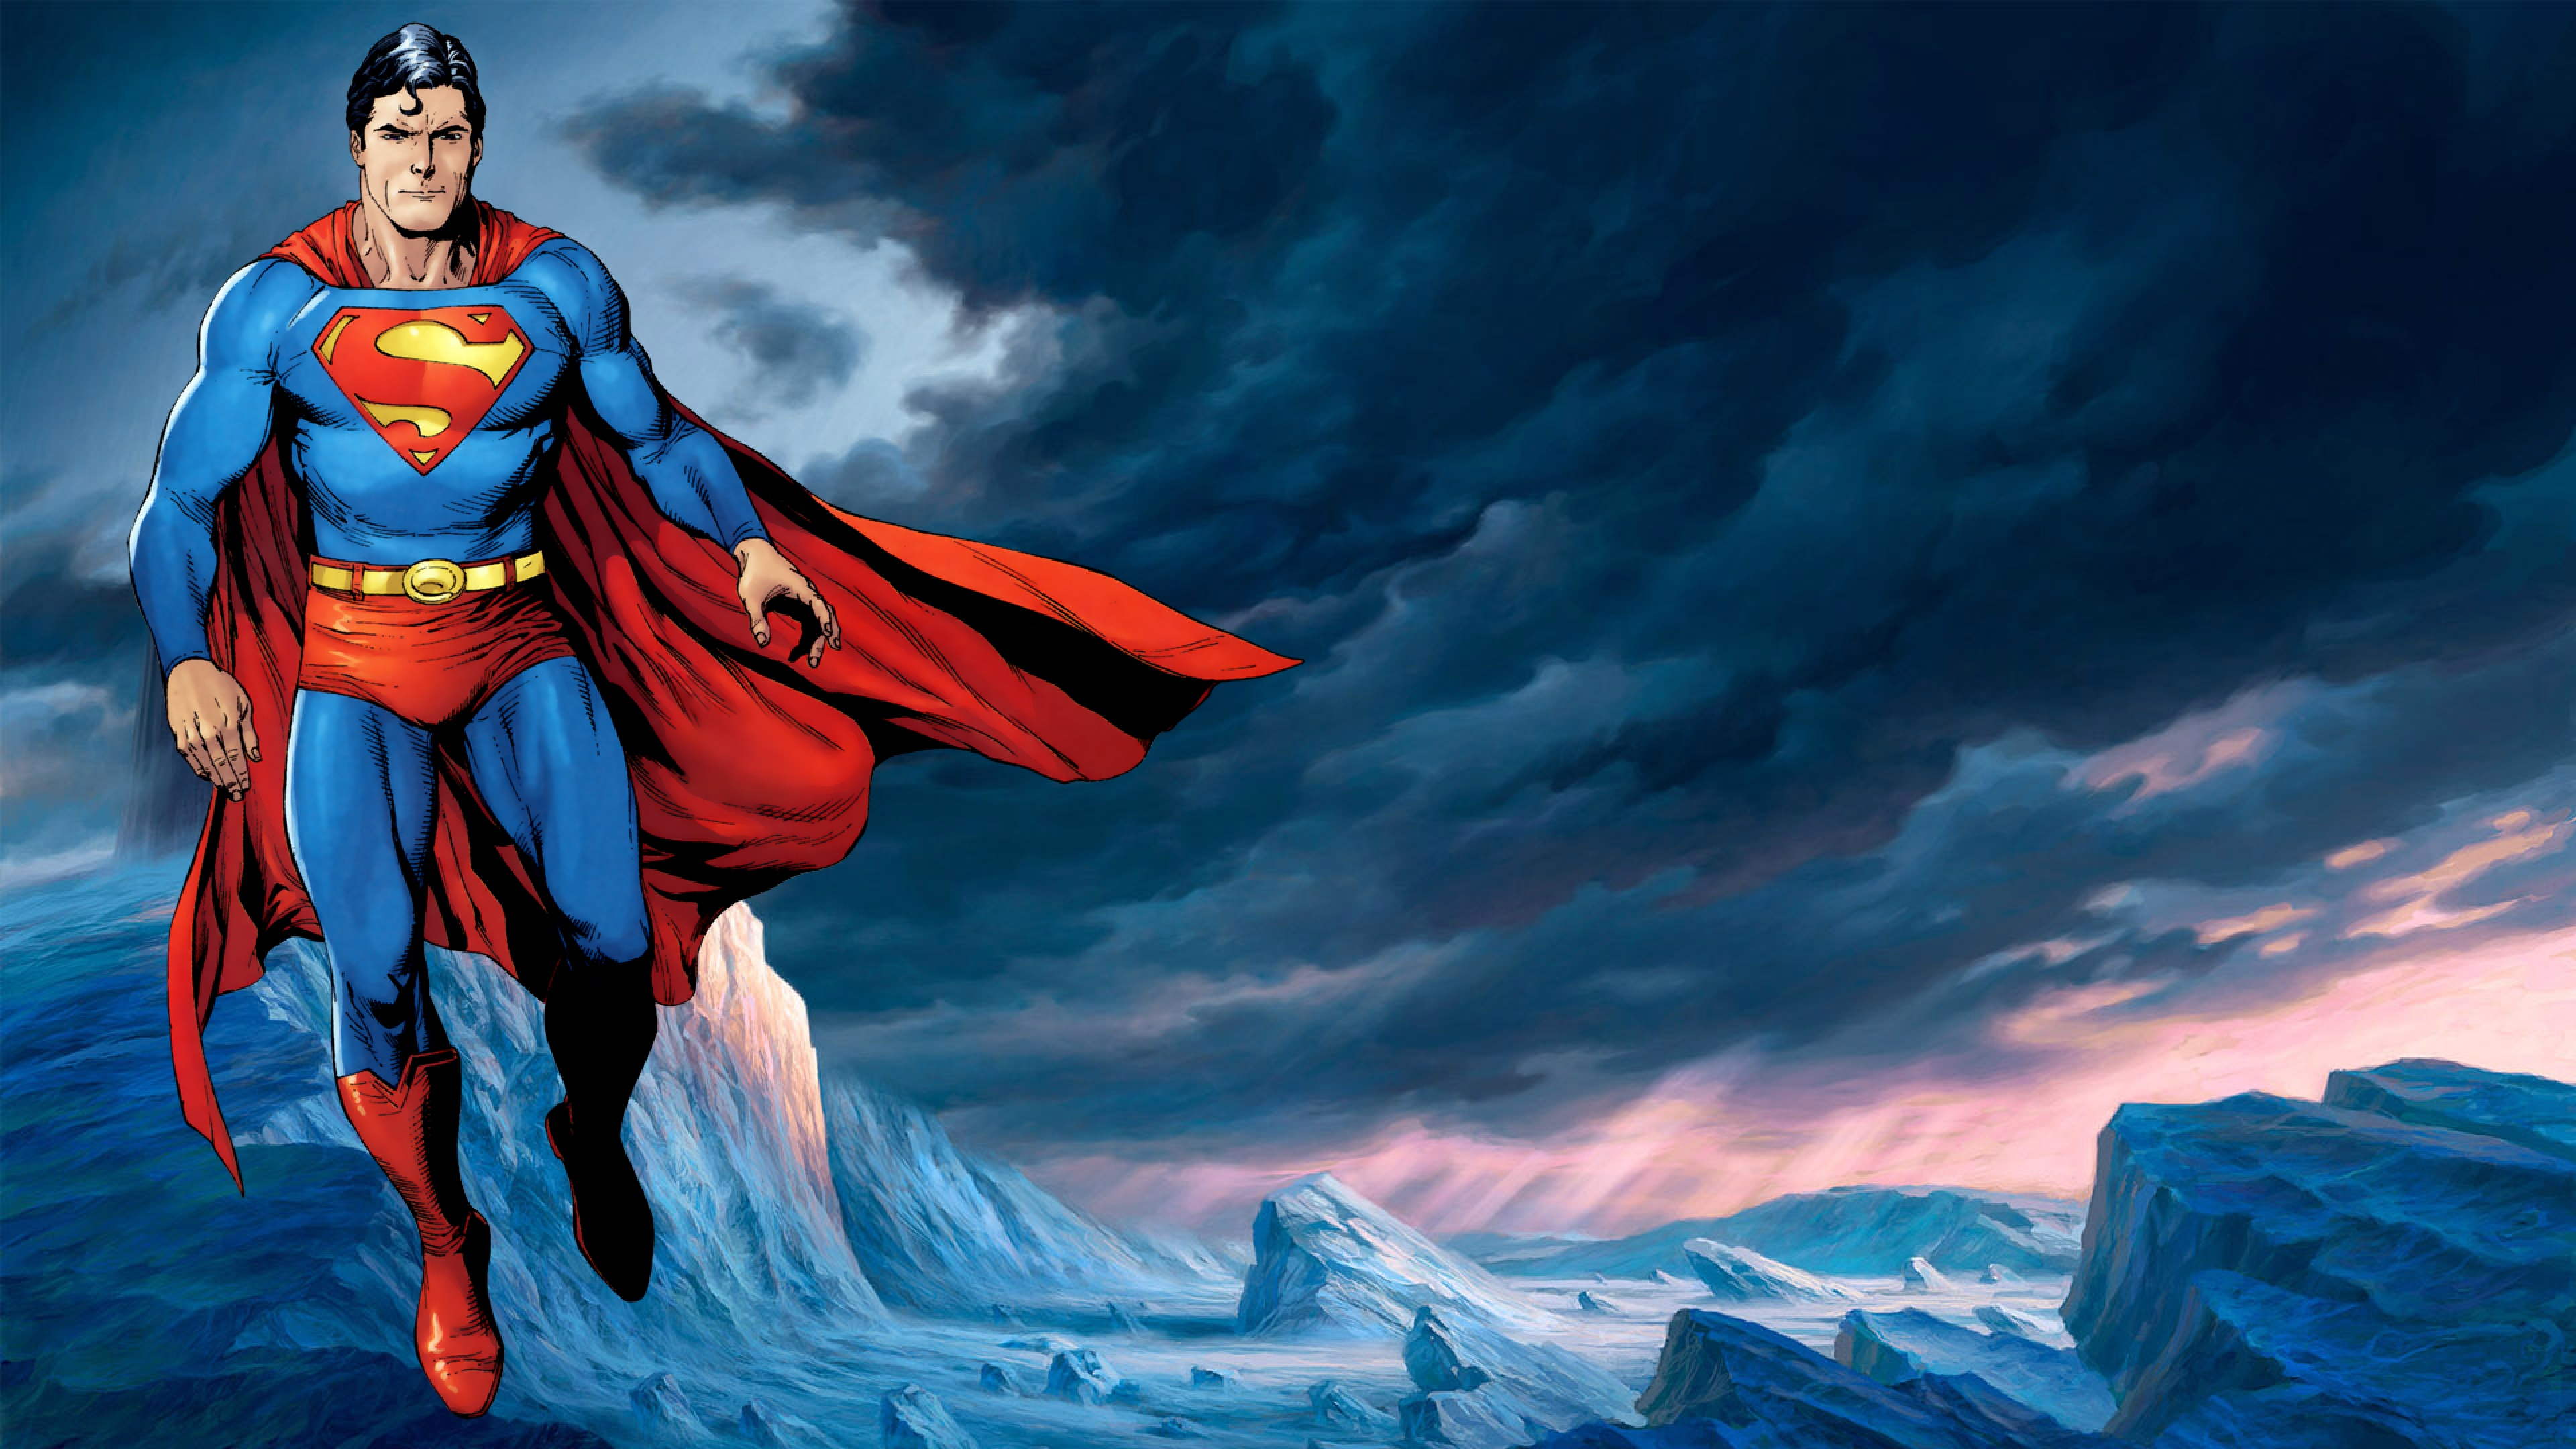 Superman Comic Wallpapers Full HD - Wickedsa com